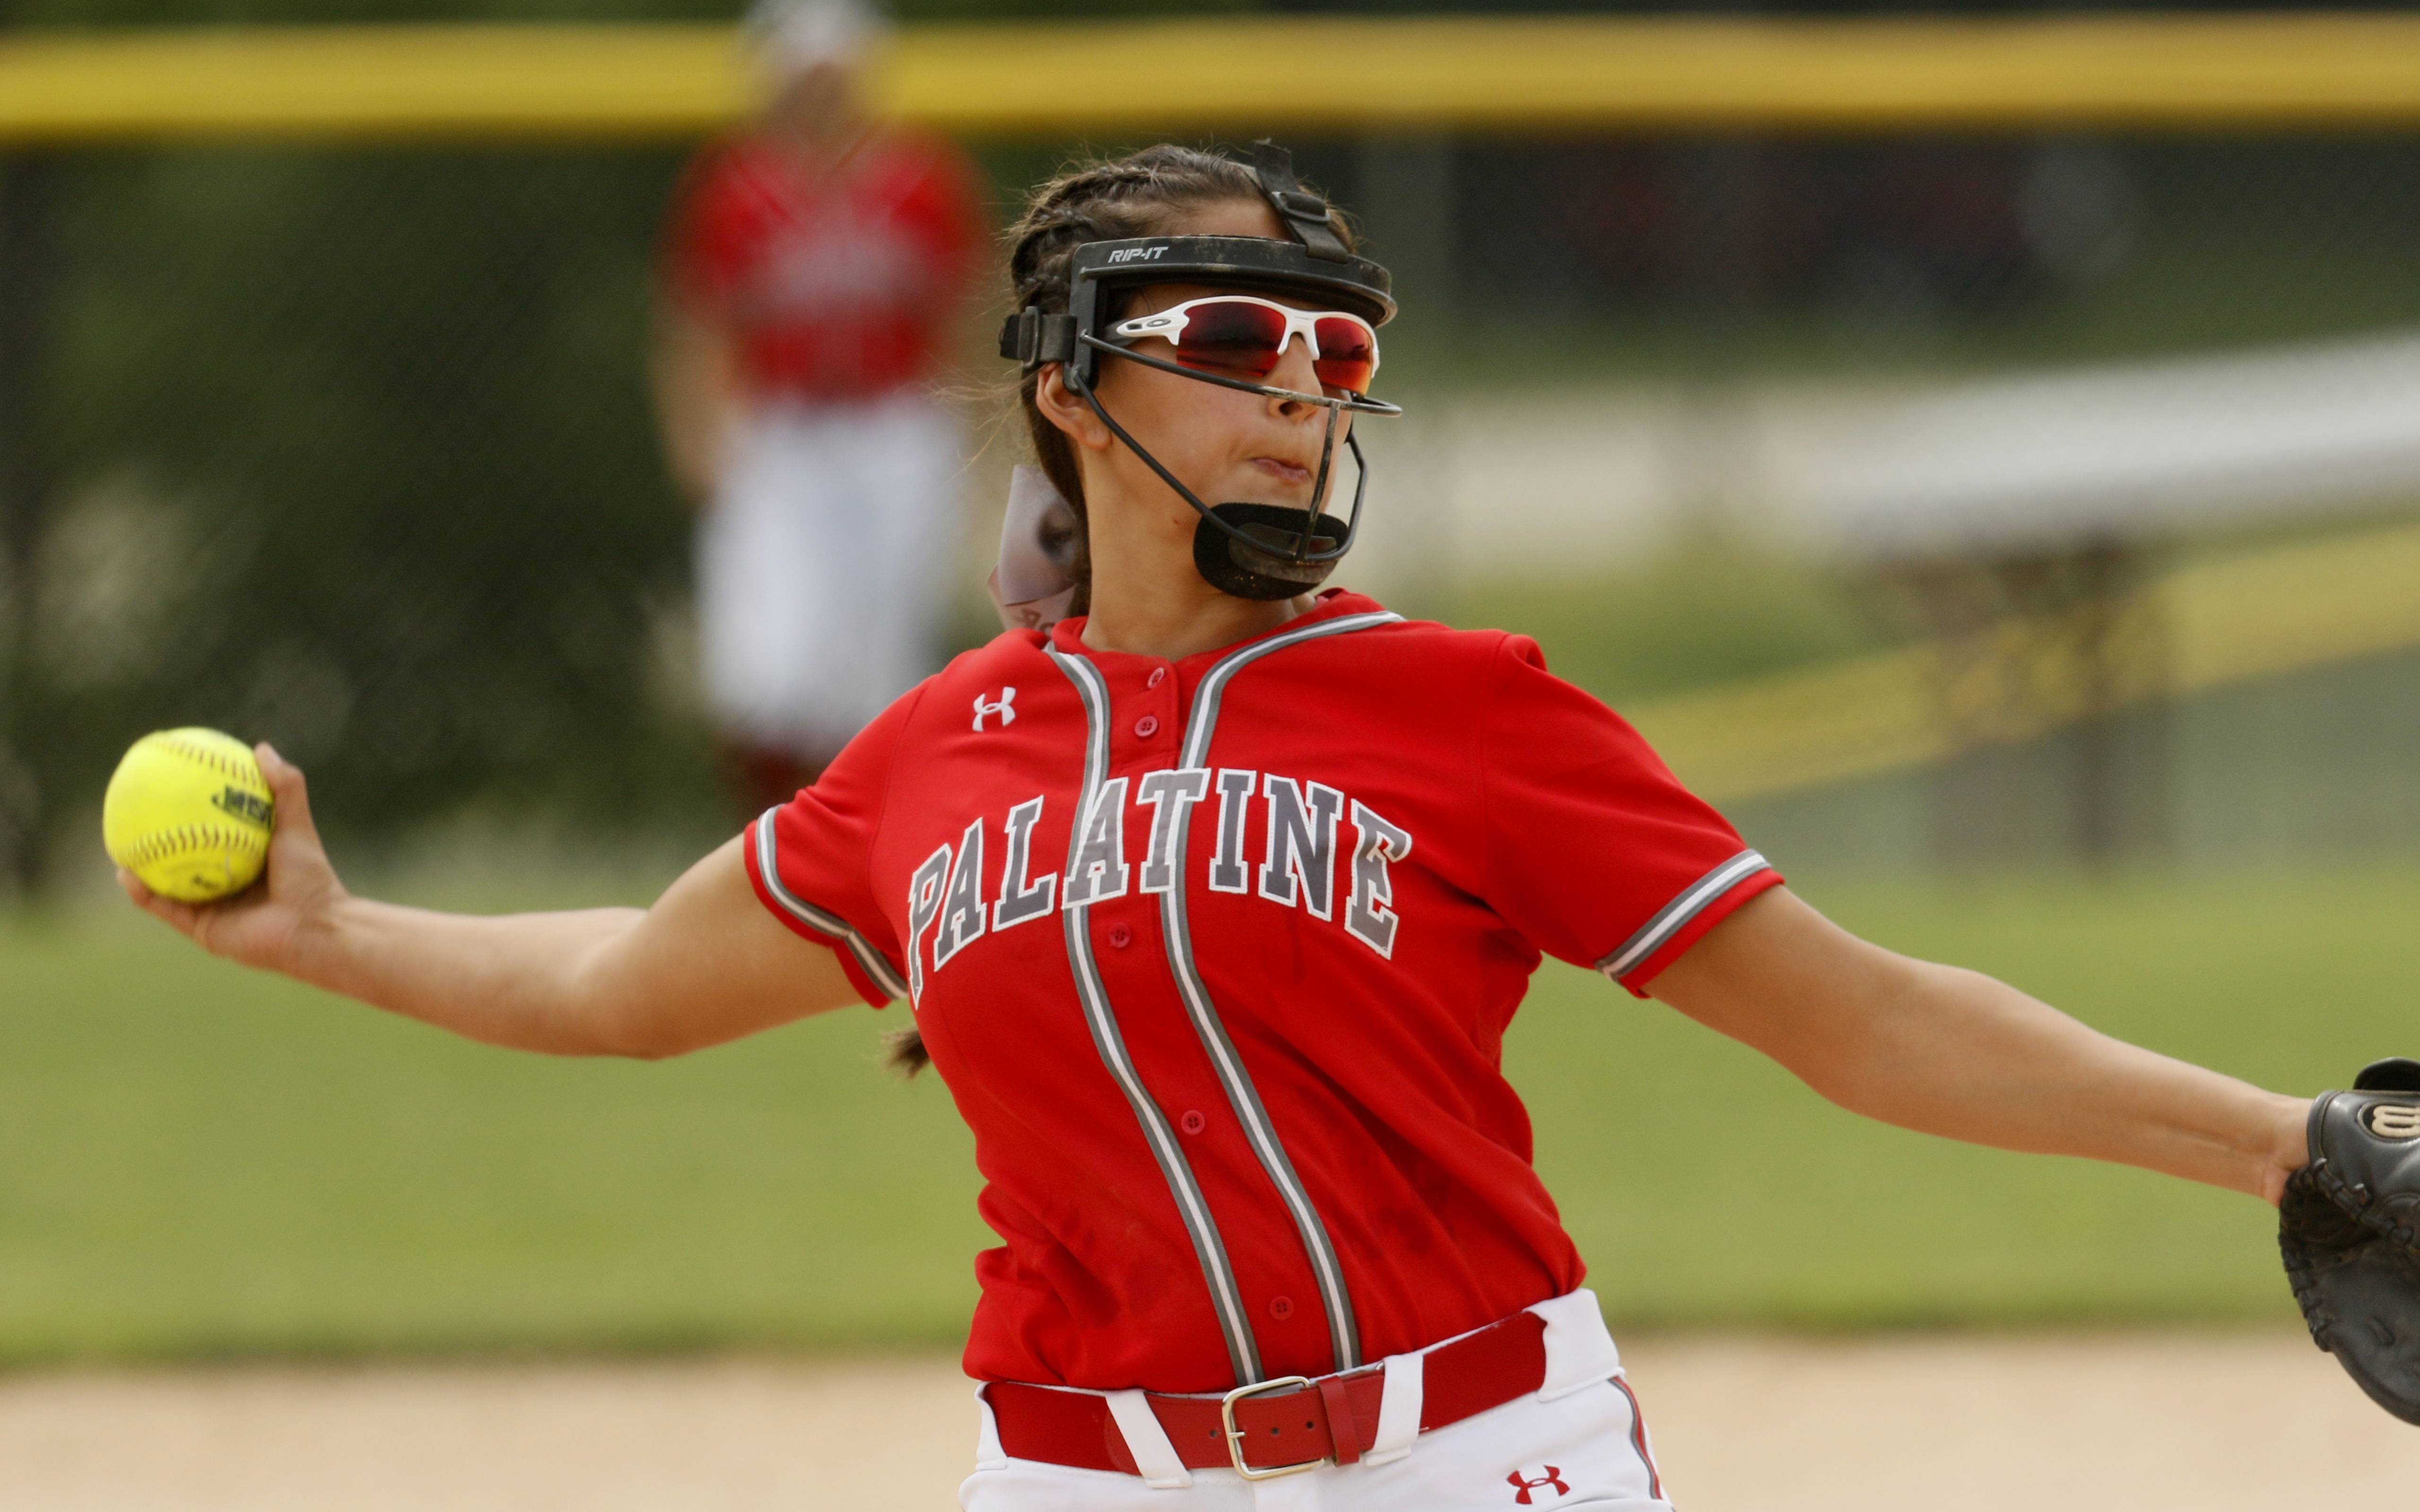 Palatine's Sarah Grossman delivers a pitch against York during the Class 4A third-place game.